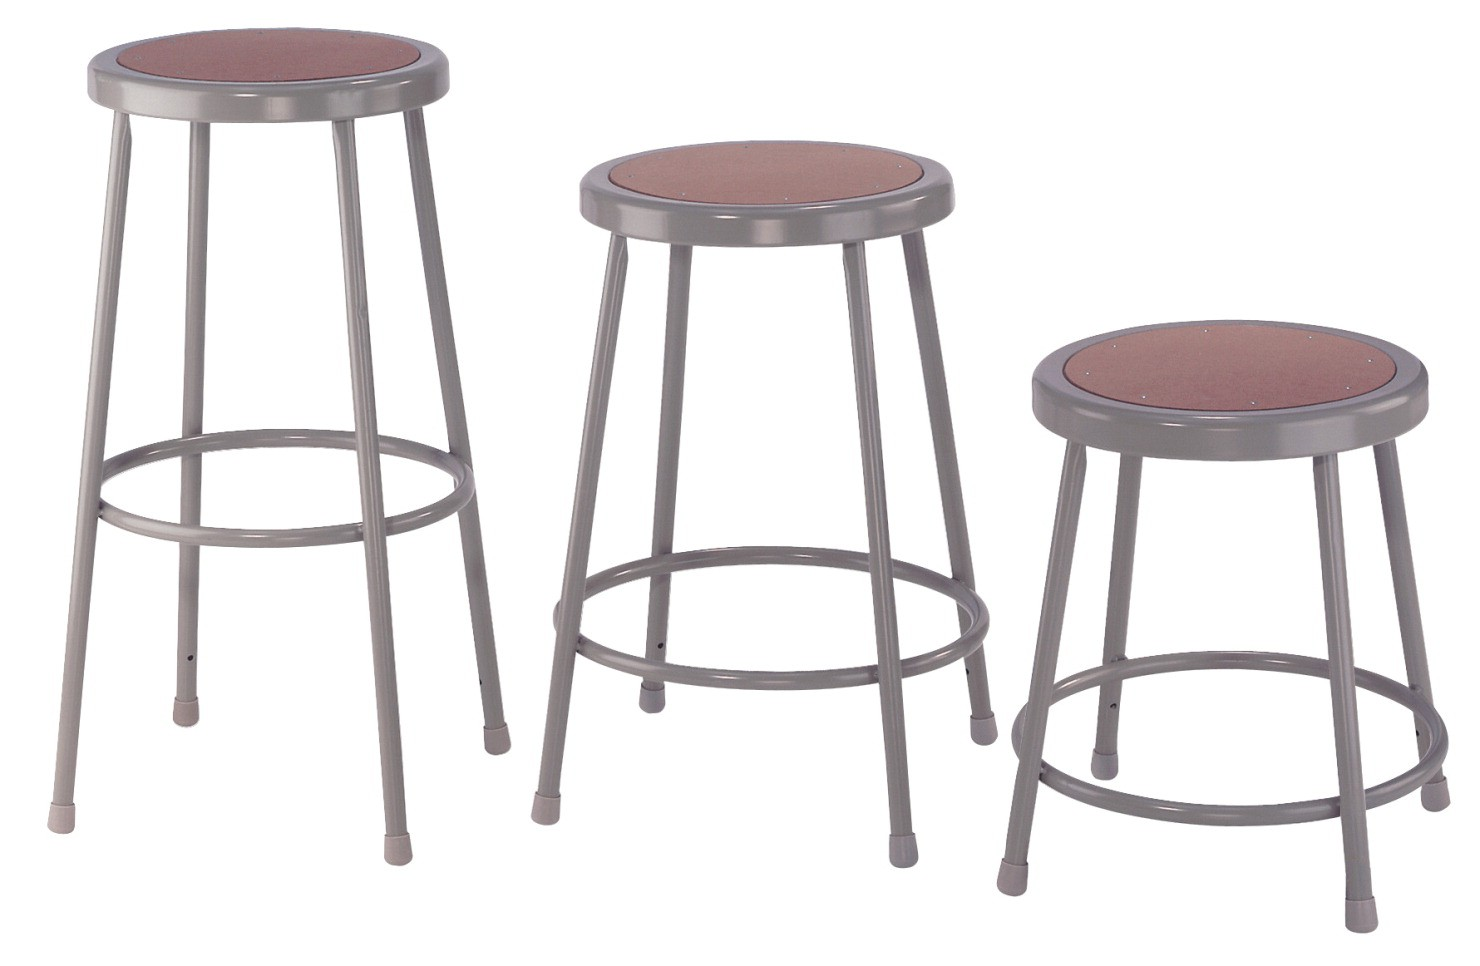 Steel Stool Fixed Height, 18 Inch